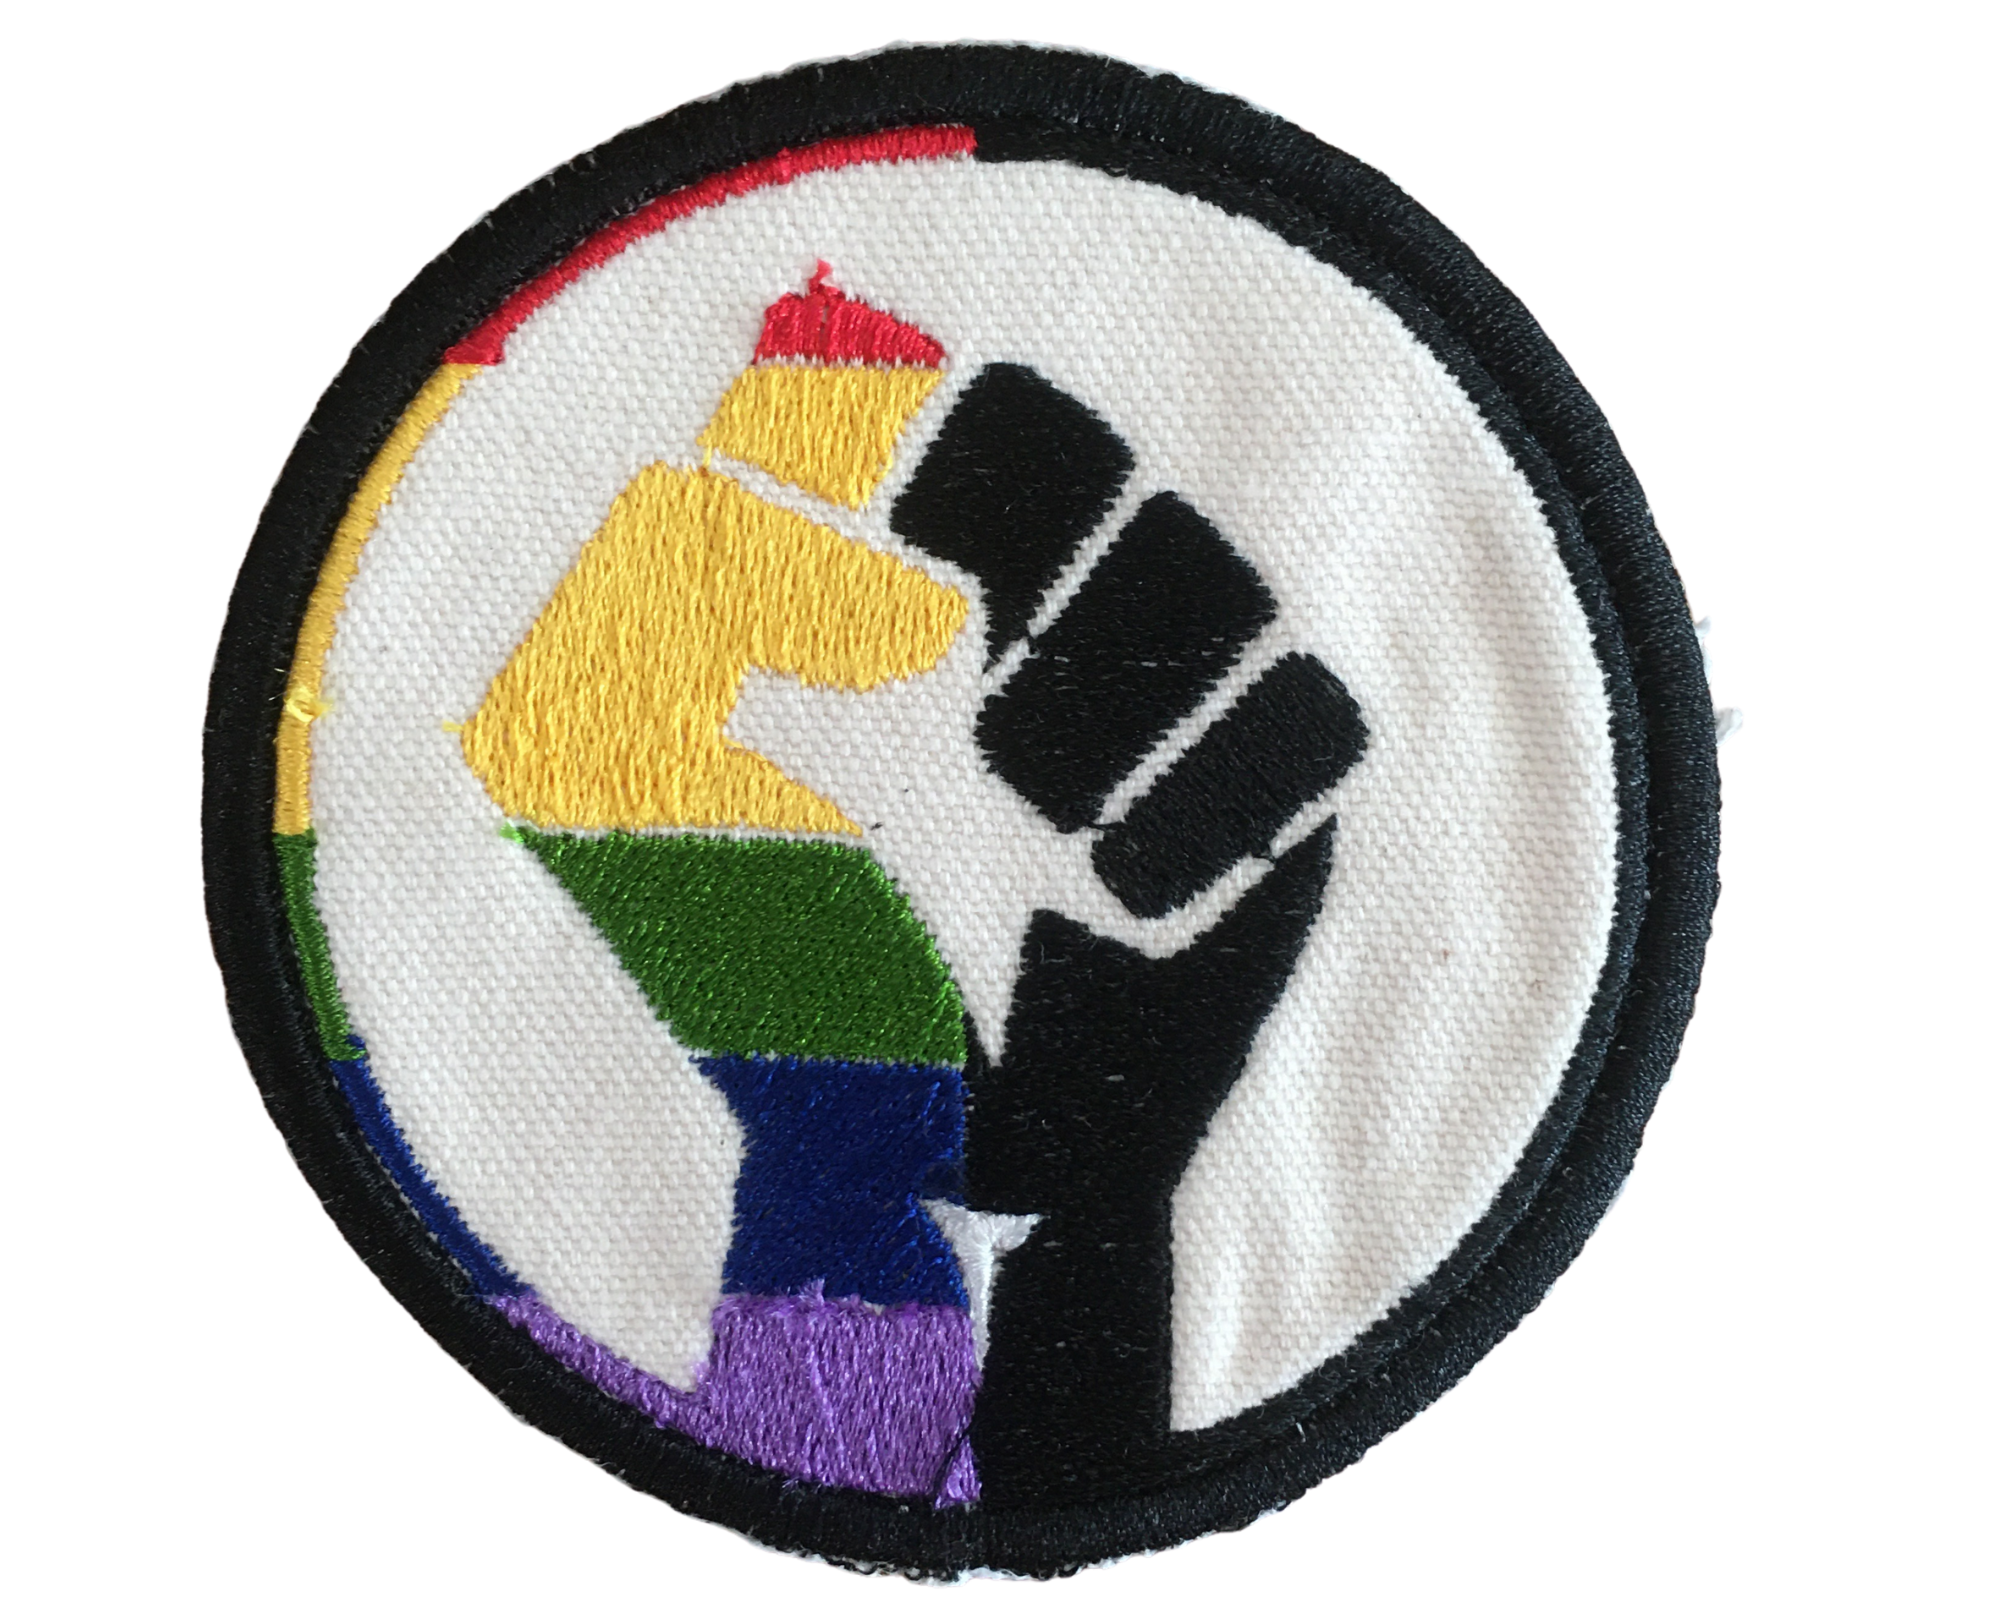 POPIN JULIA LGBT BLACK LIVES MATTER CIRCLE PATCH-1